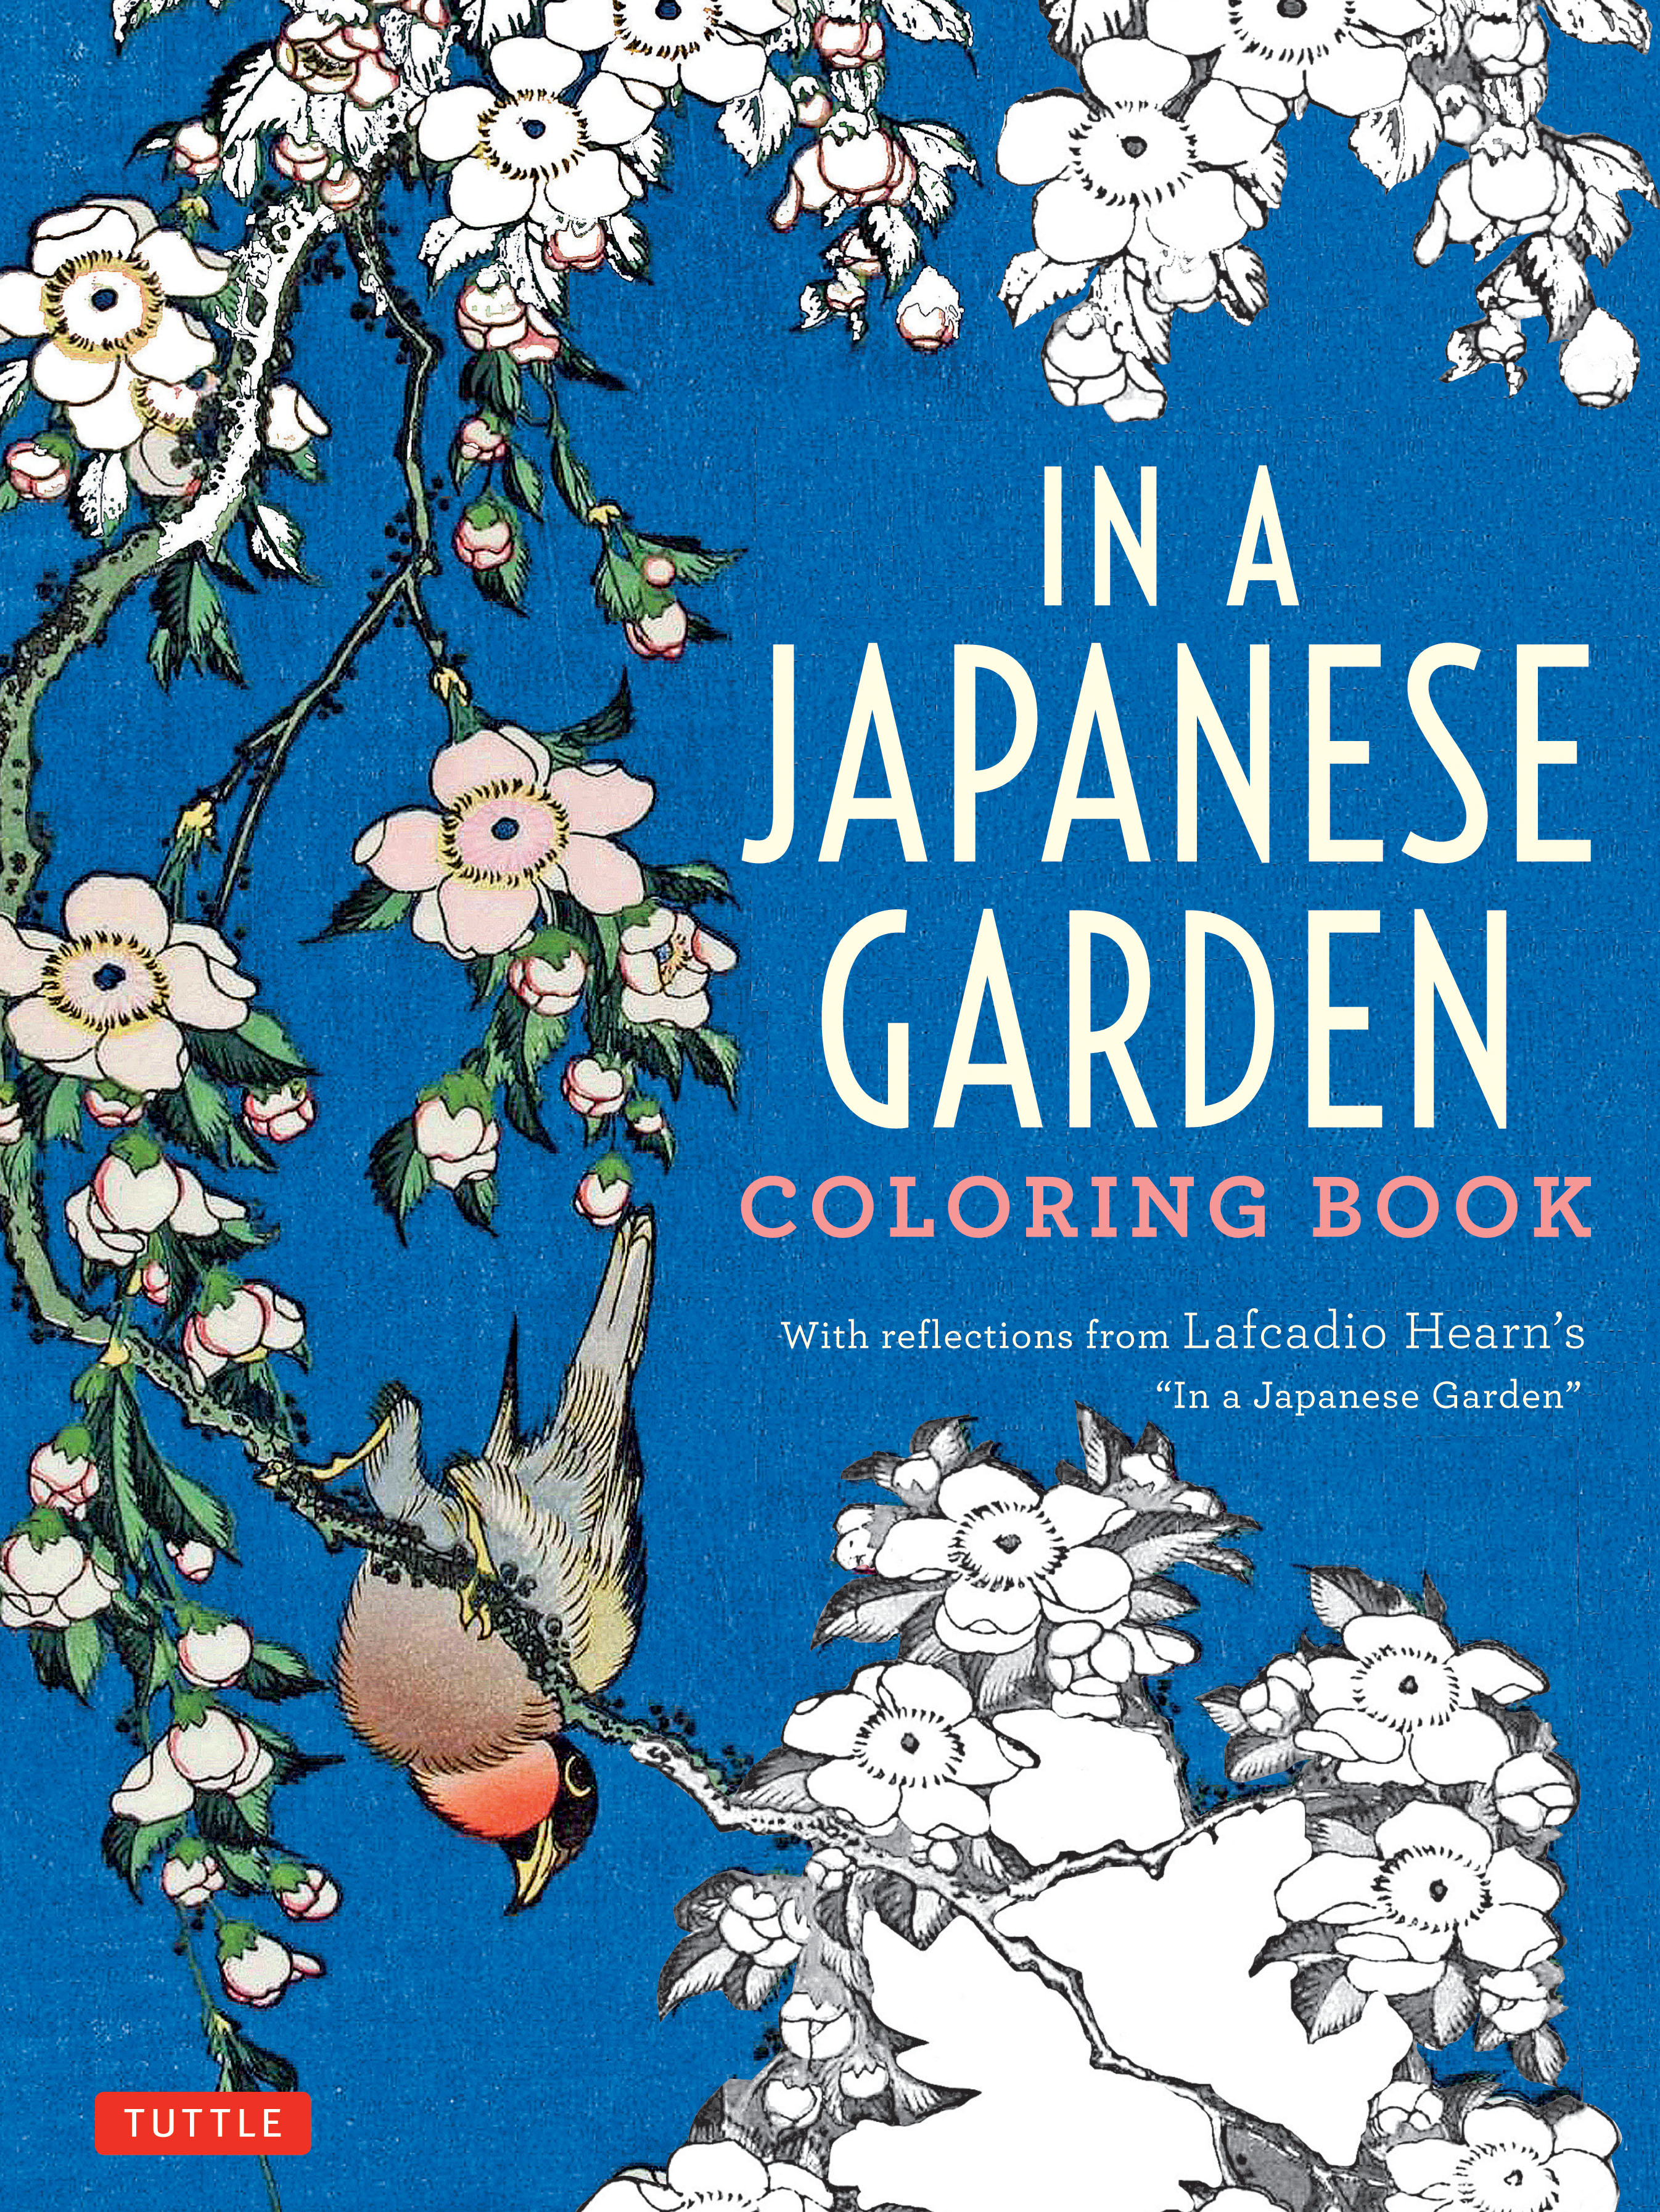 Featuring Elegant Designs In A Japanese Garden Coloring Book Is The Perfect Stress Reliever For Fans Of Classical Art And Literature